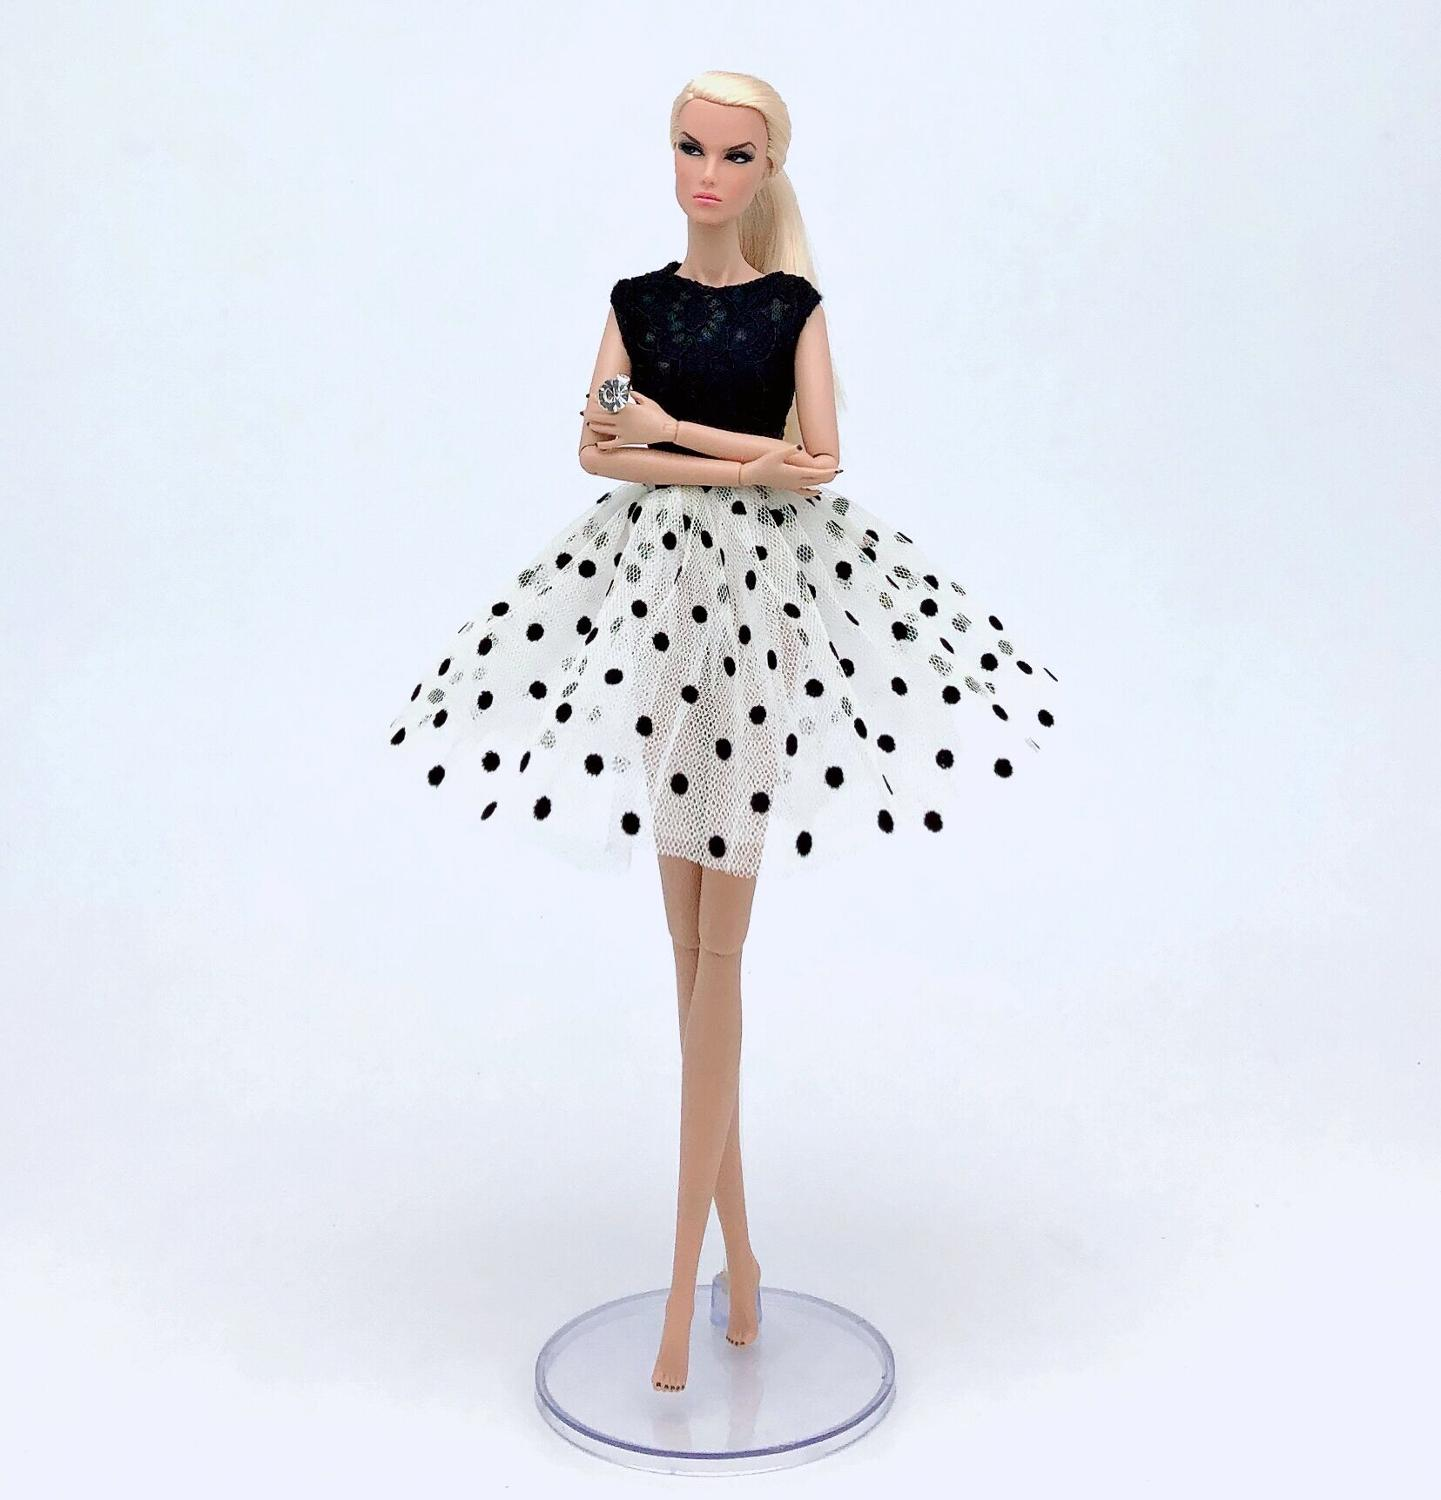 Office Outfit Wave Point Dress for Barbie 1/6 Doll Casual wear Accessories Clothes Play House Dressing Up Costume Kids Toys Gift|Dolls Accessories|Toys & Hobbies - AliExpress